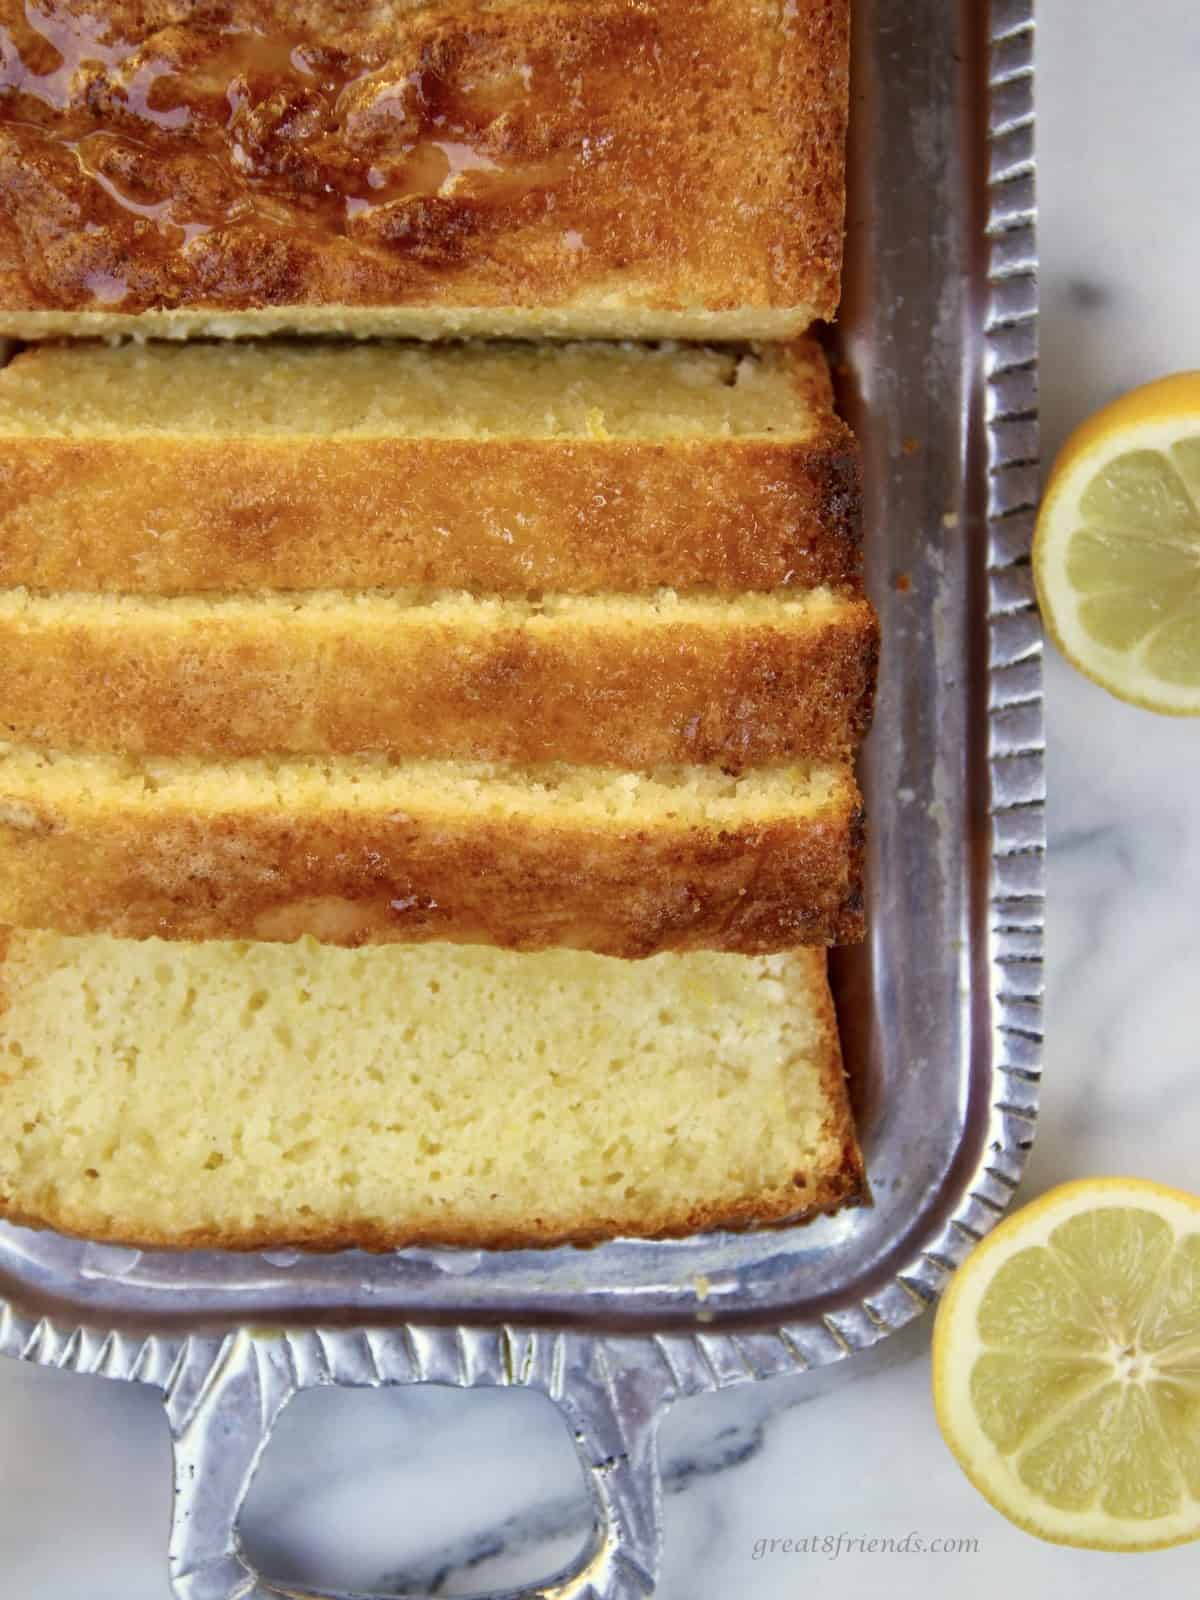 Sliced cake on a silver platter with  a lemon cut in half on the side.